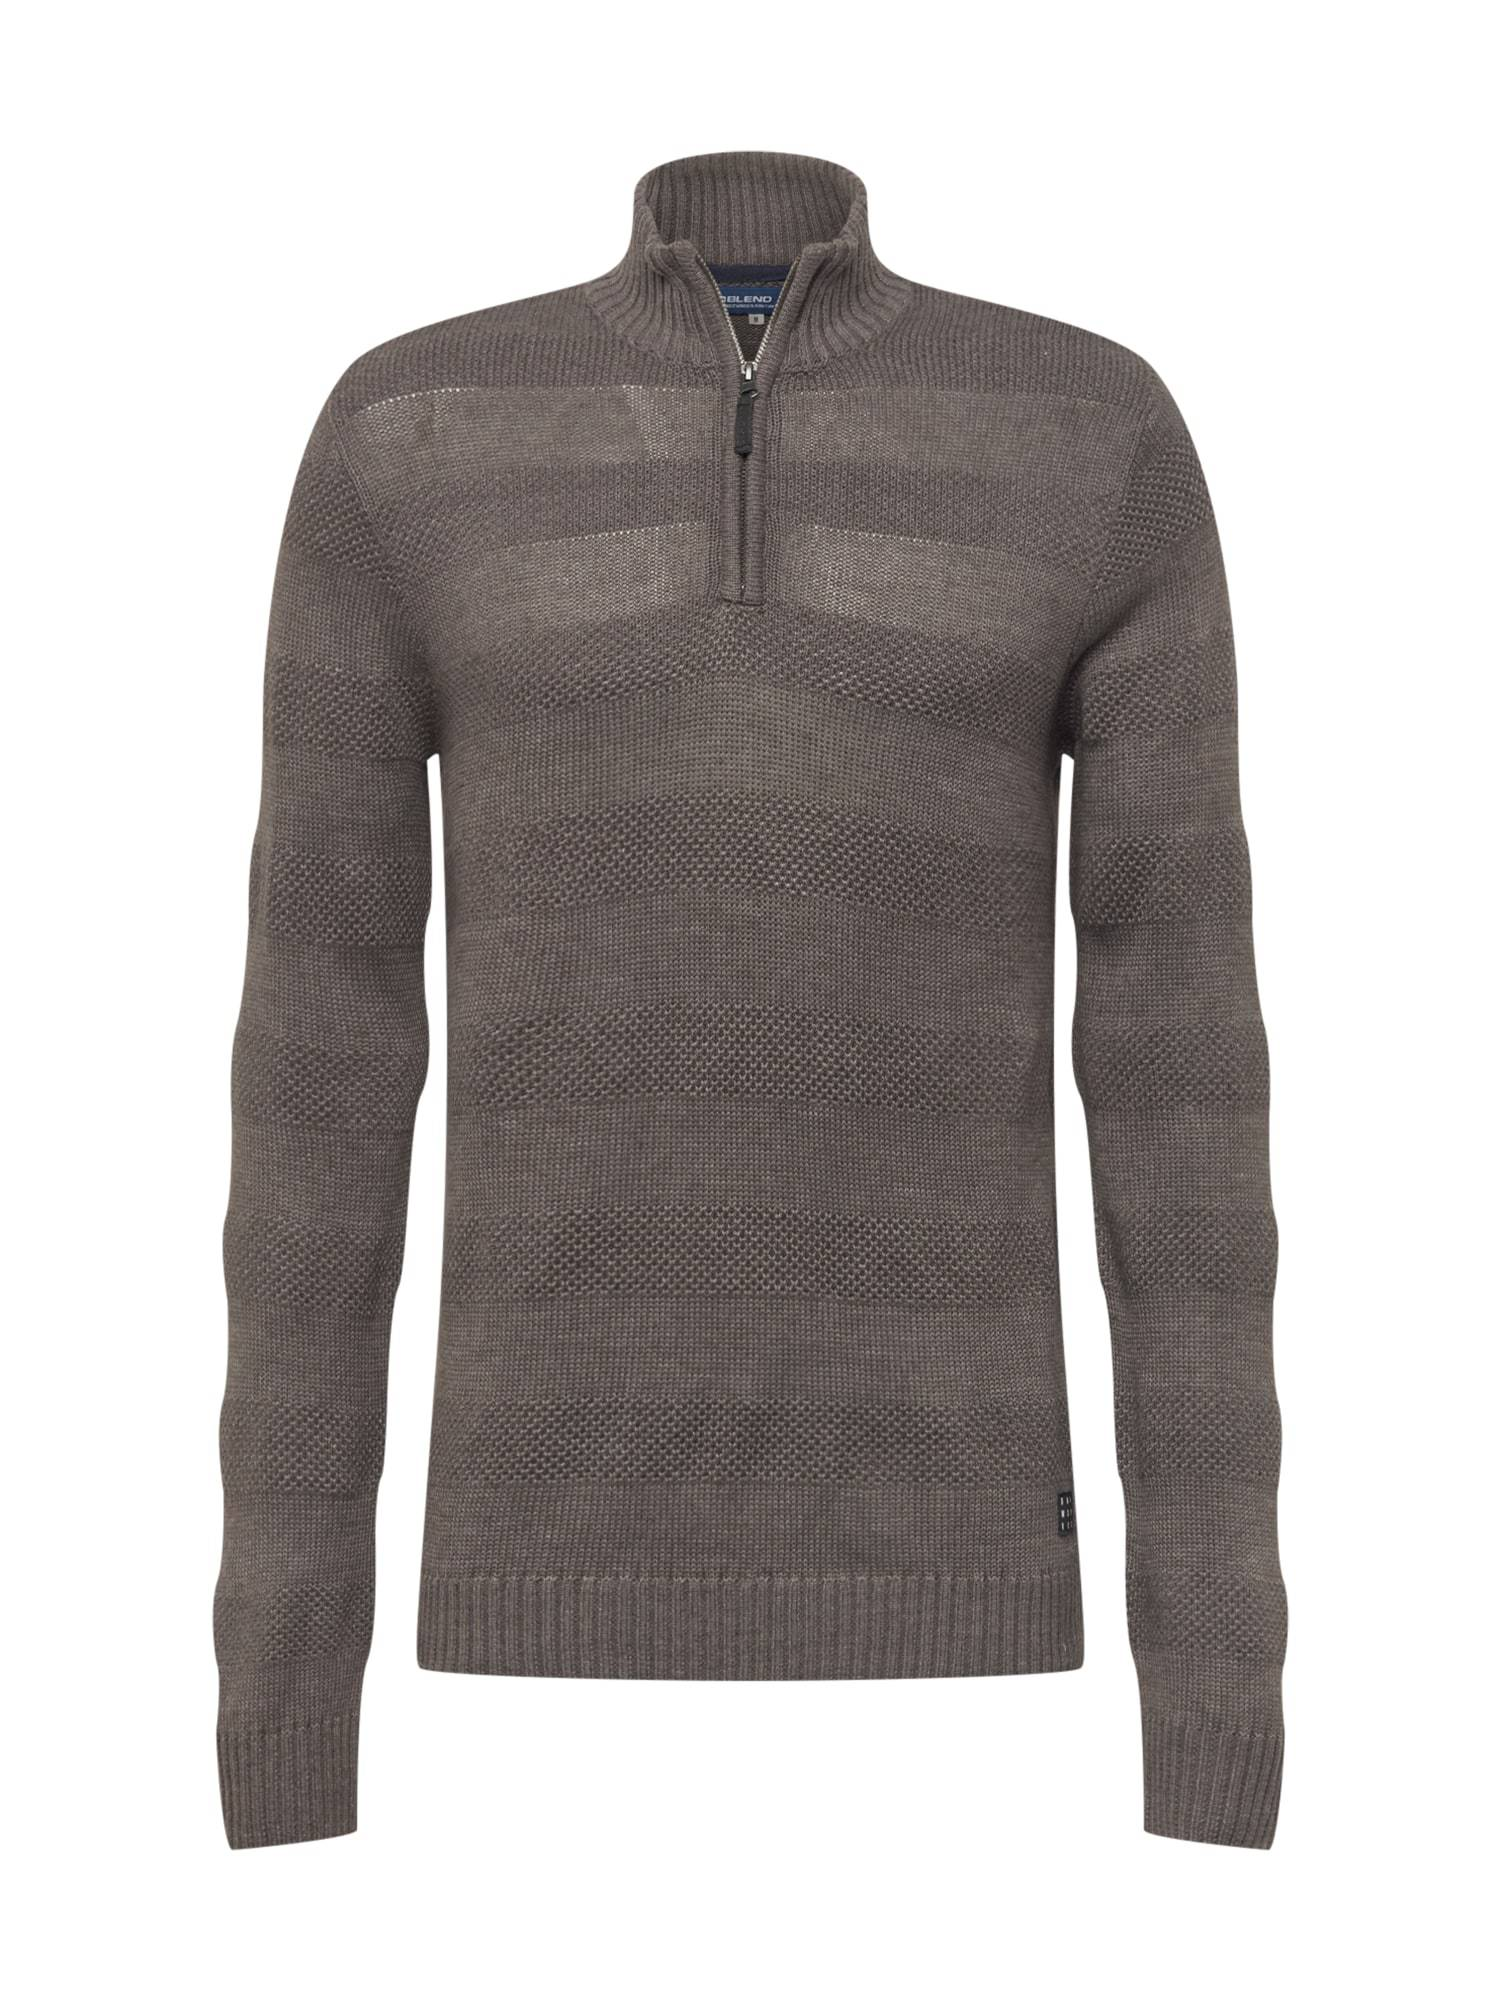 BLEND Pull-over 'Nantes'  - Gris - Taille: S - male